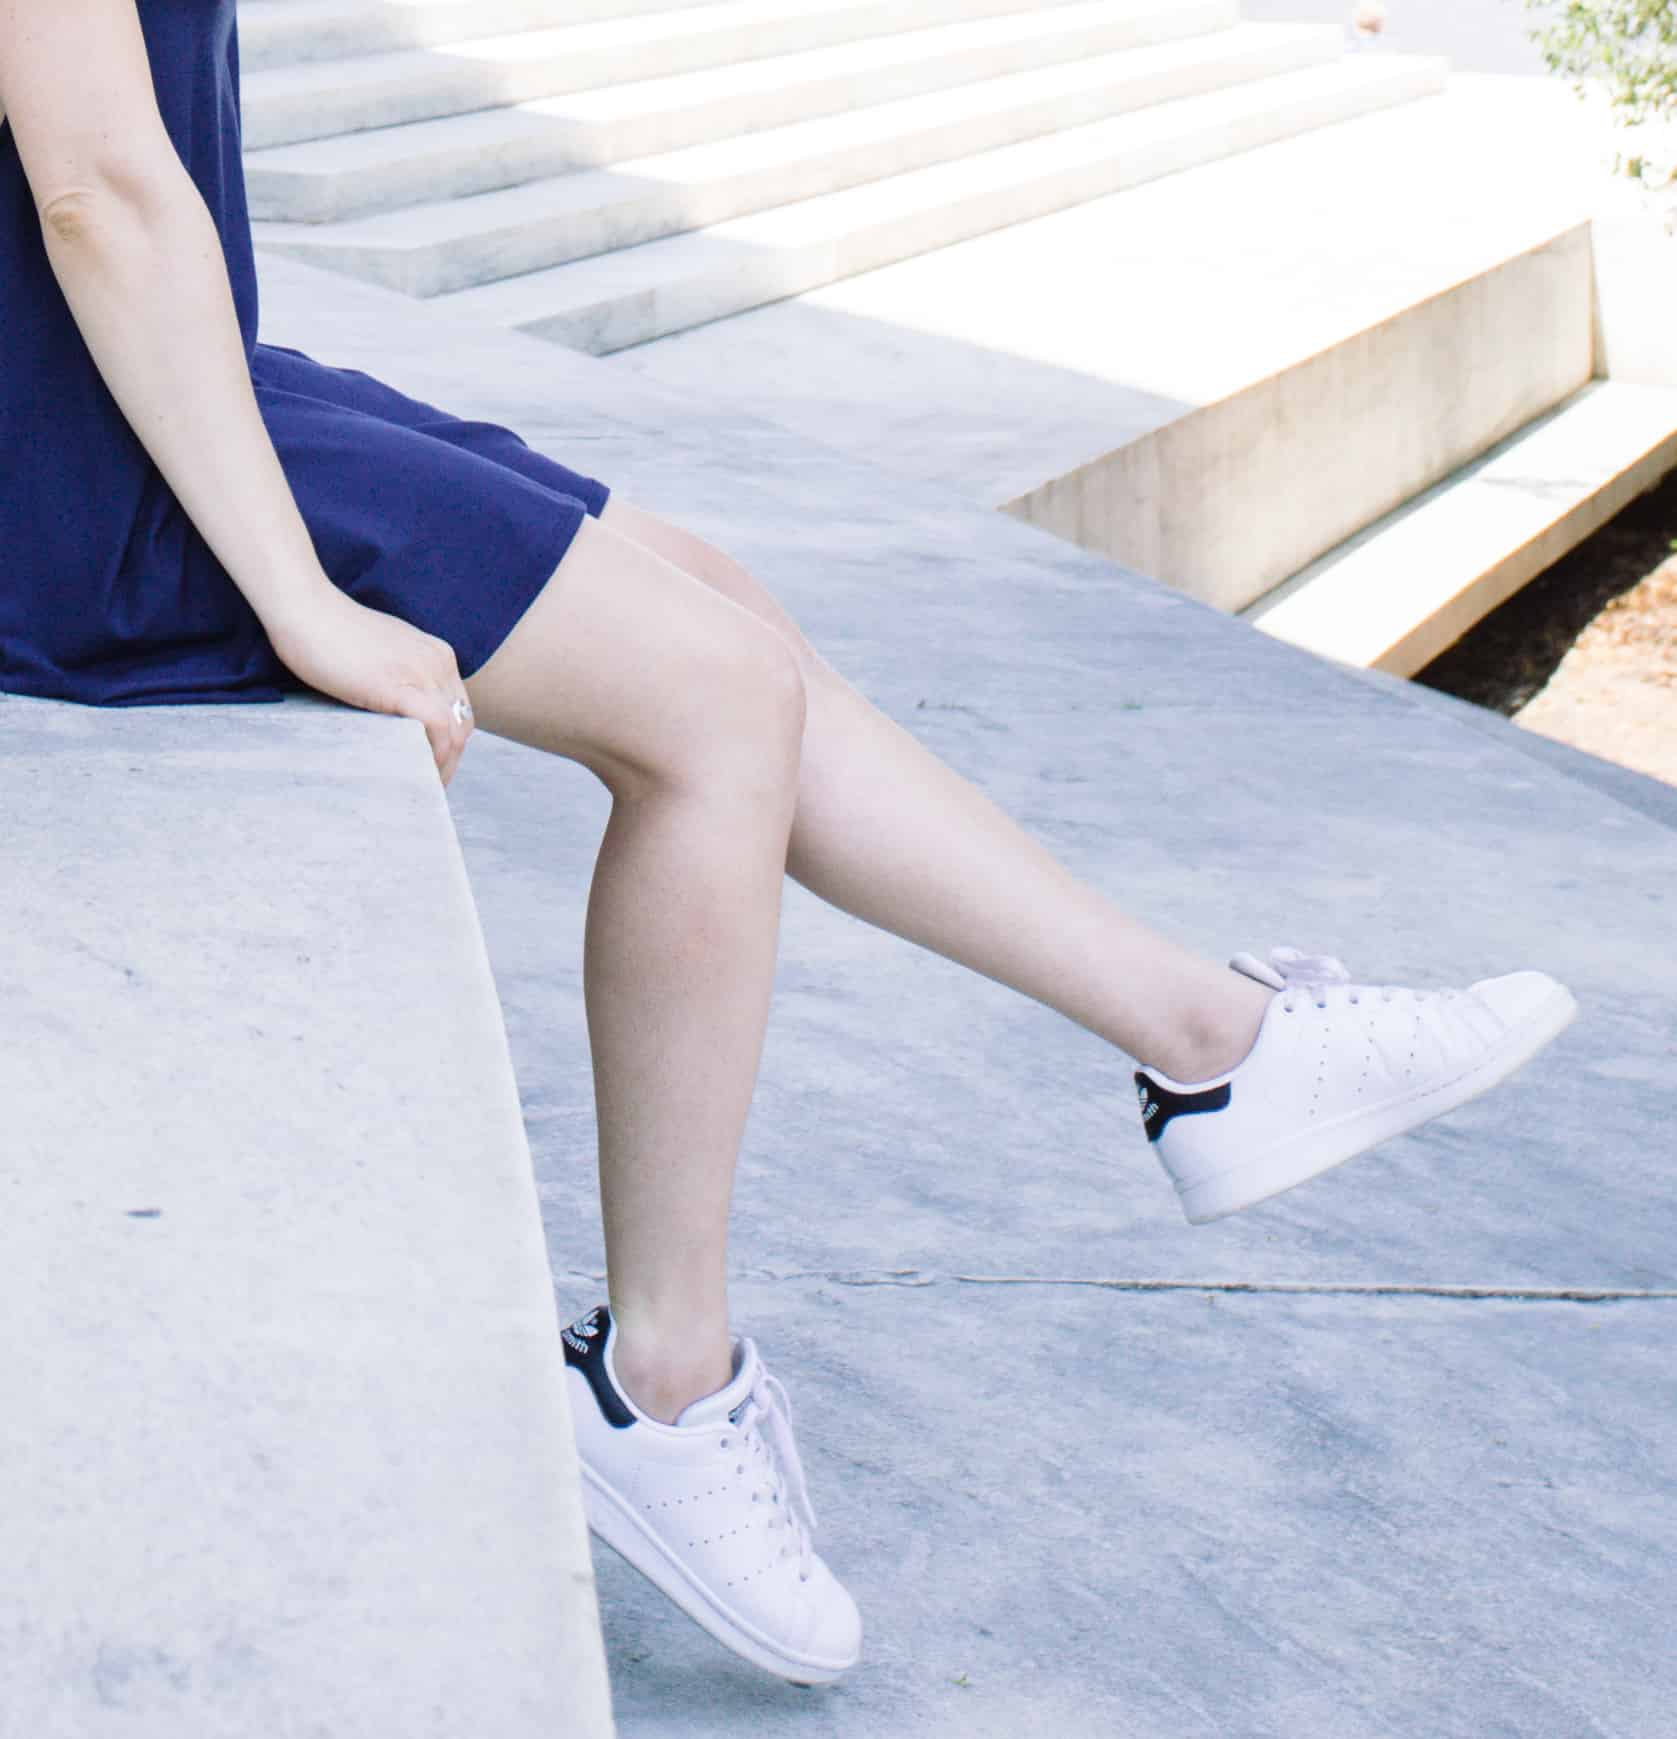 Summer casual outfit: navy dress and white Adidas sneakers